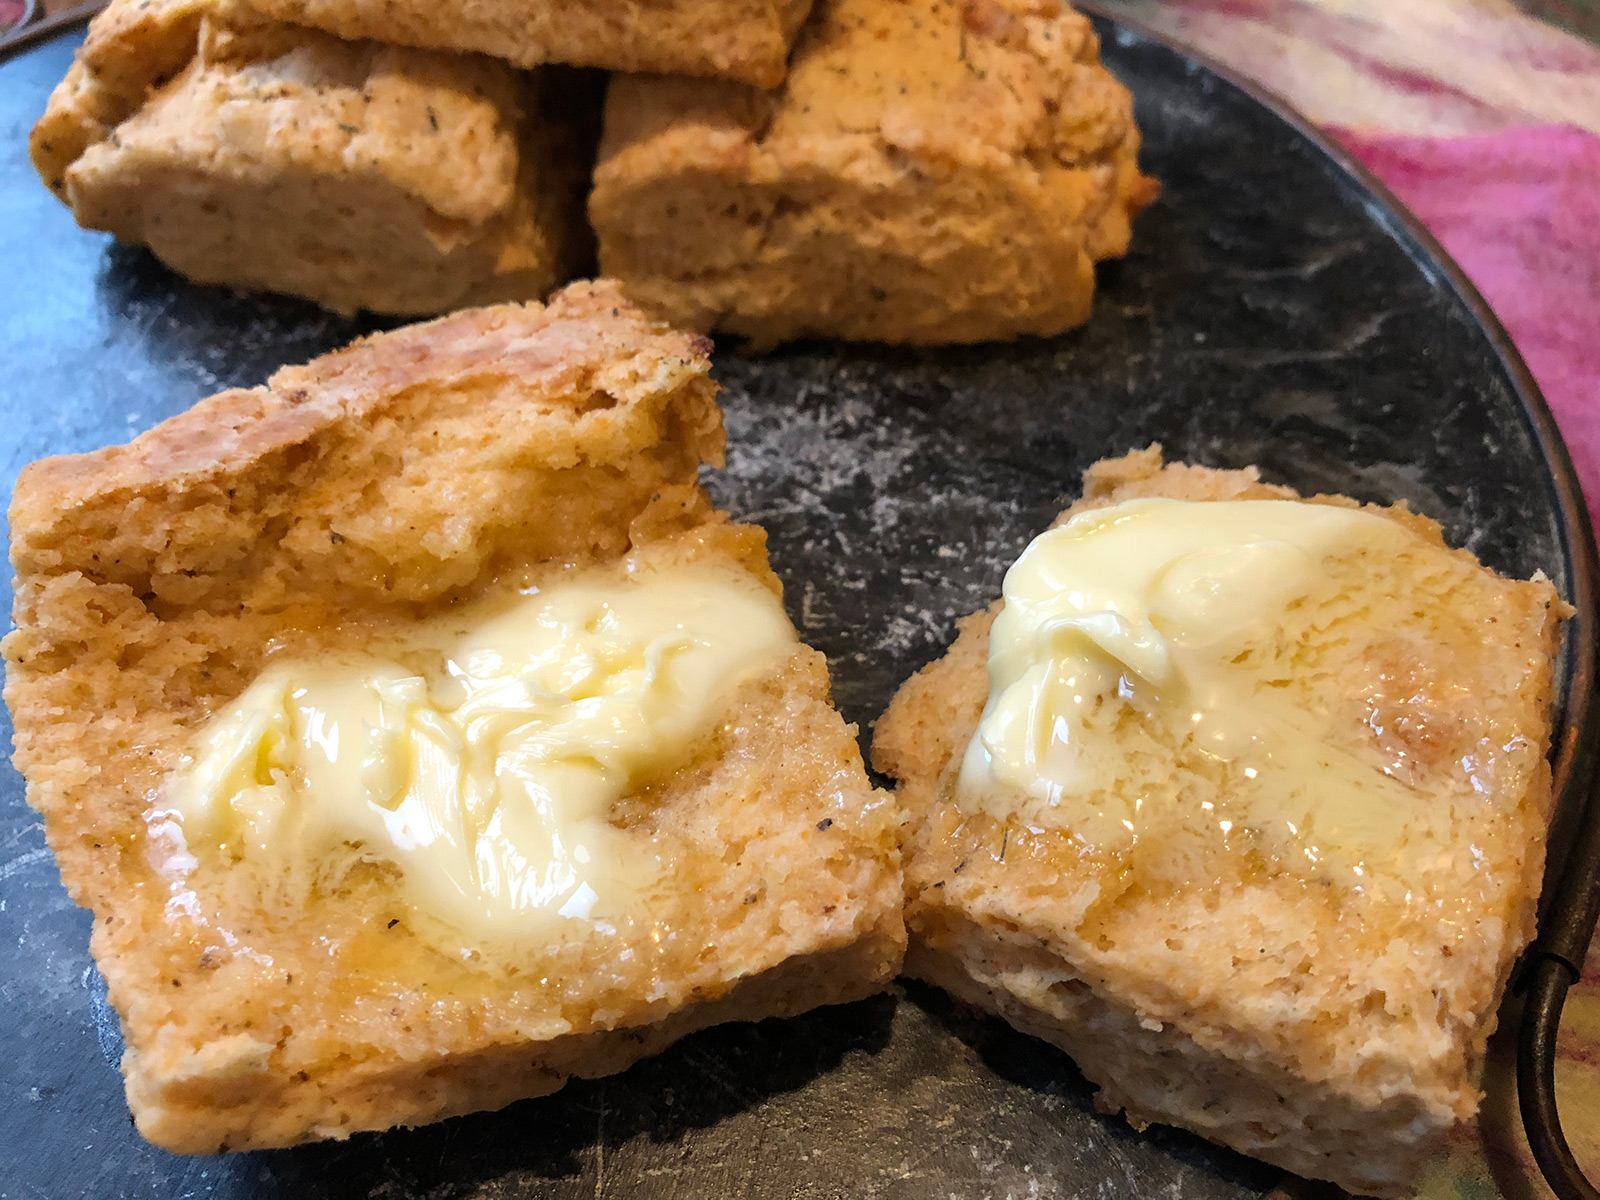 Make Chicken in a Biskit Chicken Biscuits and Bask in Your Own Brilliance